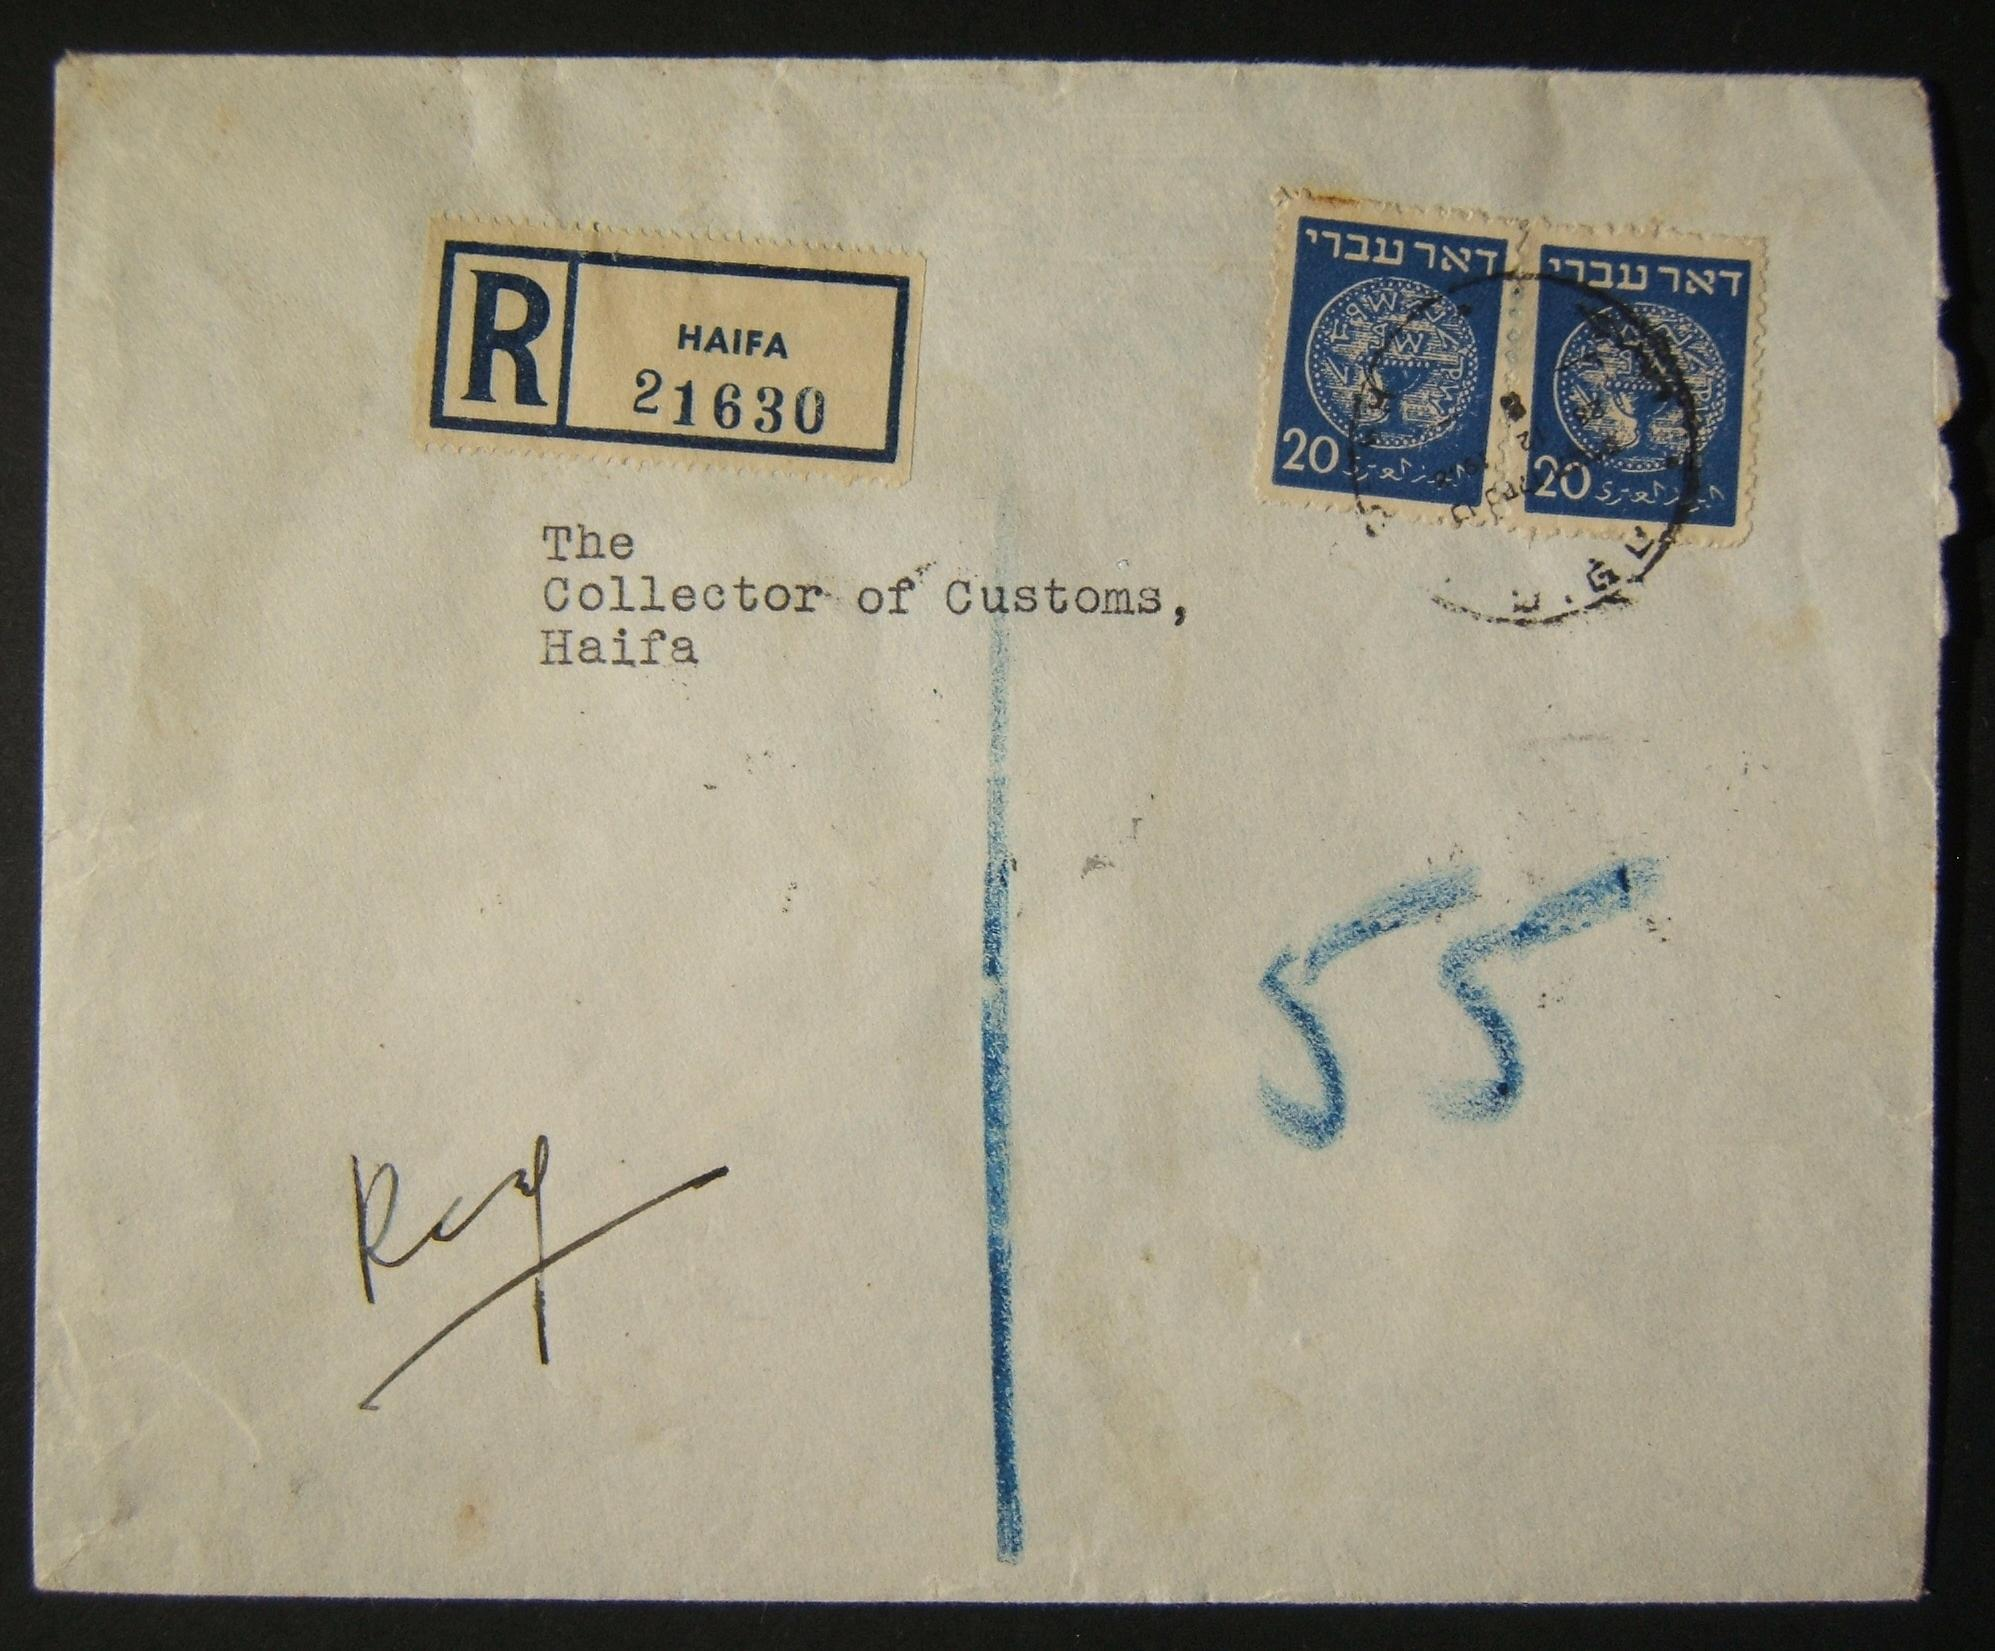 Doar Ivri PO's, rates & routes: 28-12-1948 local HAIFA commercial registered cover franked 40pr at the DO-2 period rate (15pr letter + 25pr registration) using 2x 20pr (Ba5) tied b